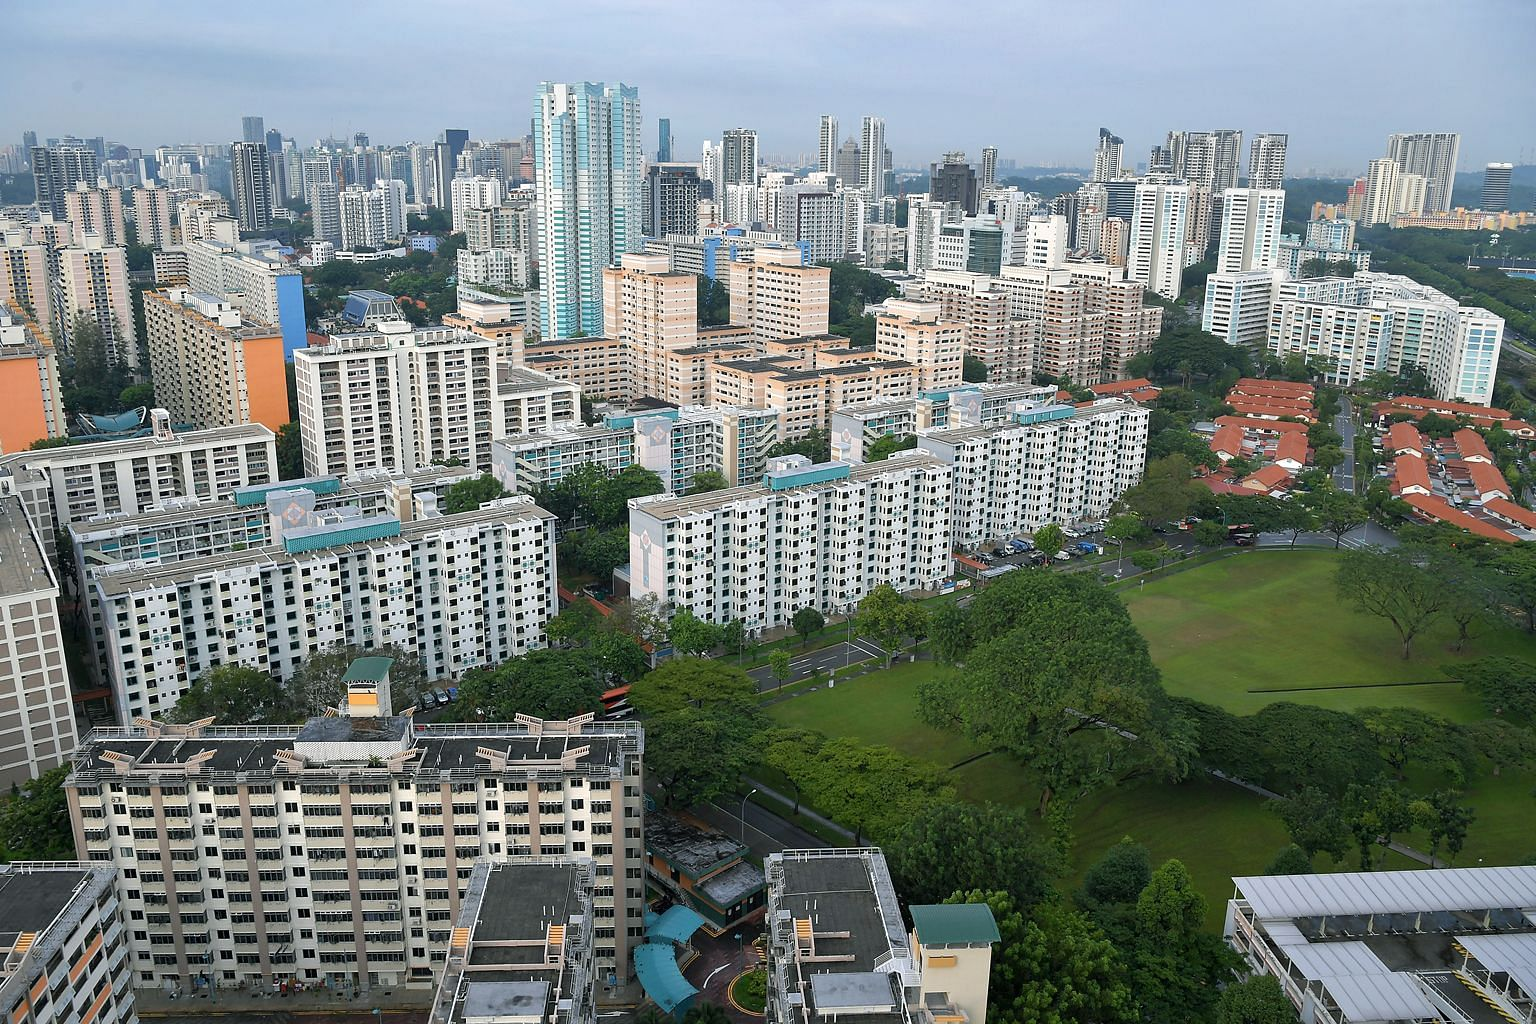 The residential property market has stayed pretty resilient, even with the cooling measures. Last year, prices hardly suffered a dip, with resale volume rising 28 per cent as total sales grew 16 per cent from 2015. Seen in this light, it is unlikely